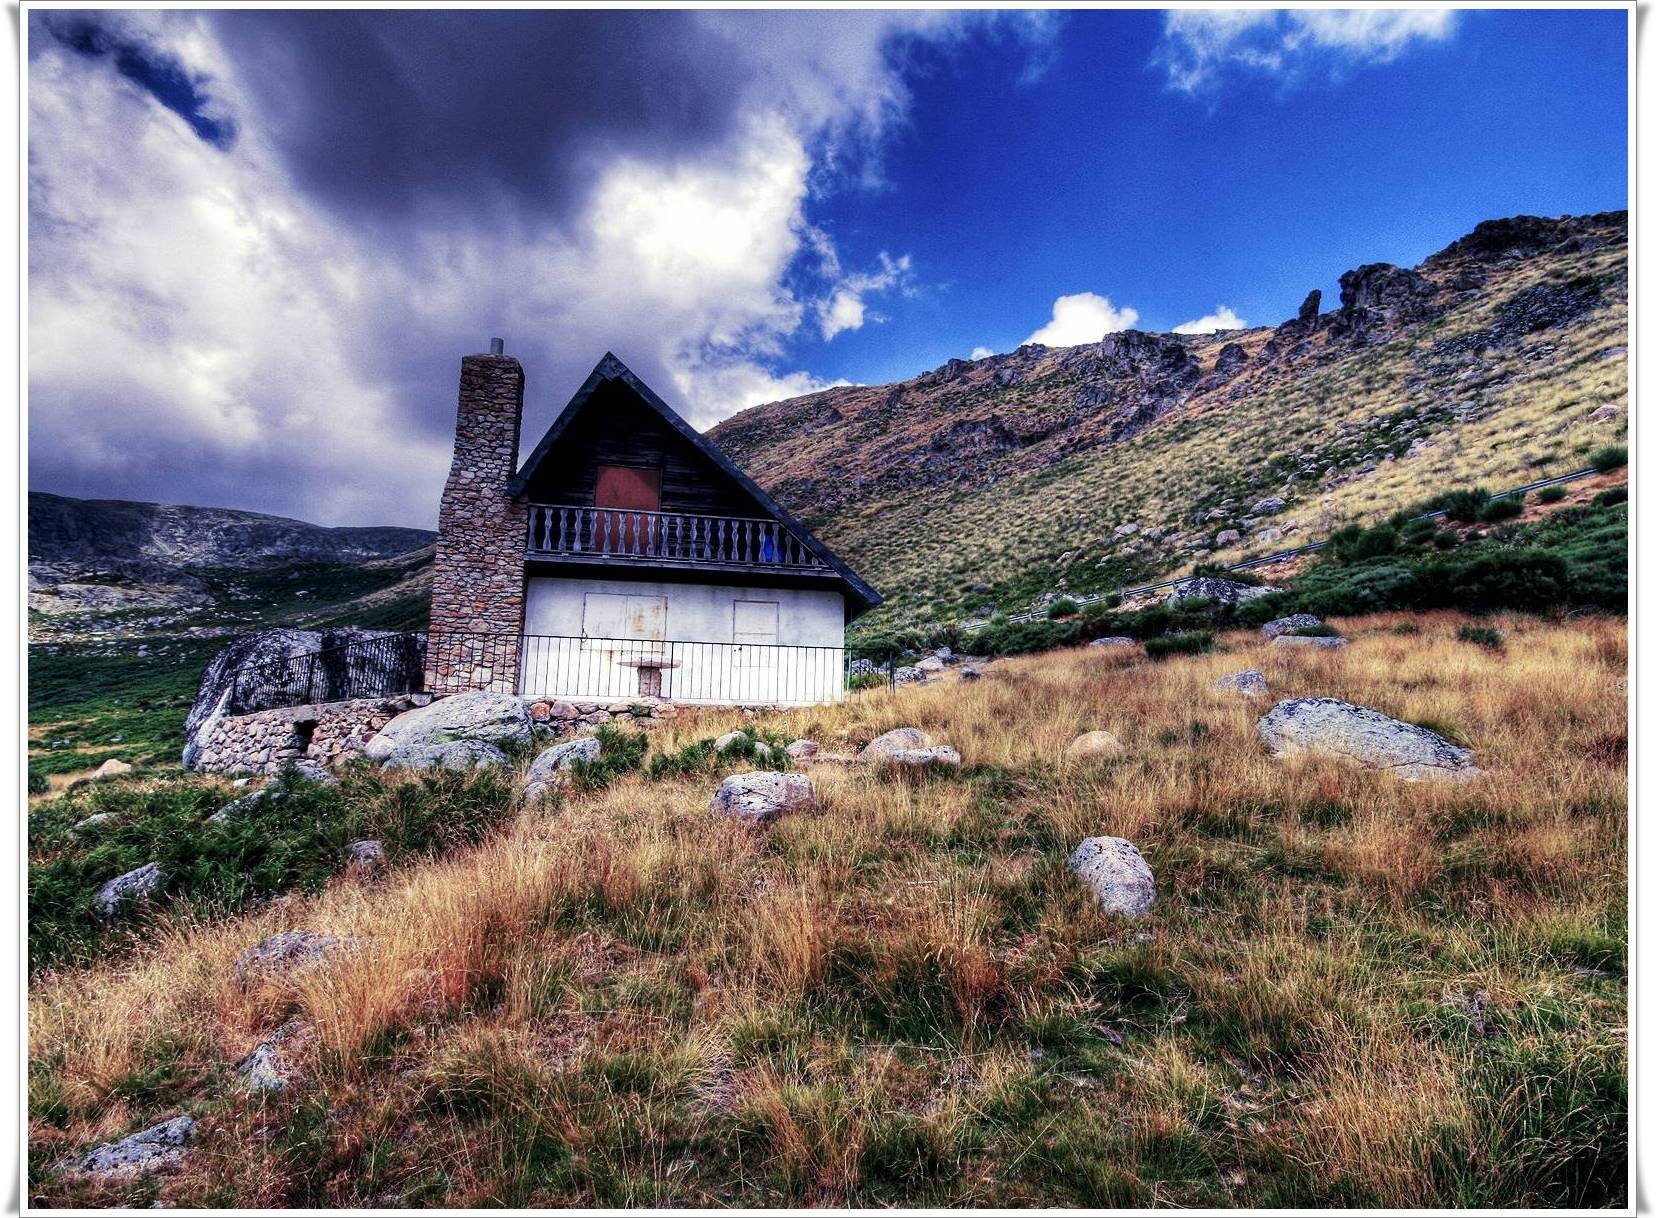 Hd mountain house pictures full hd pictures for House image full hd